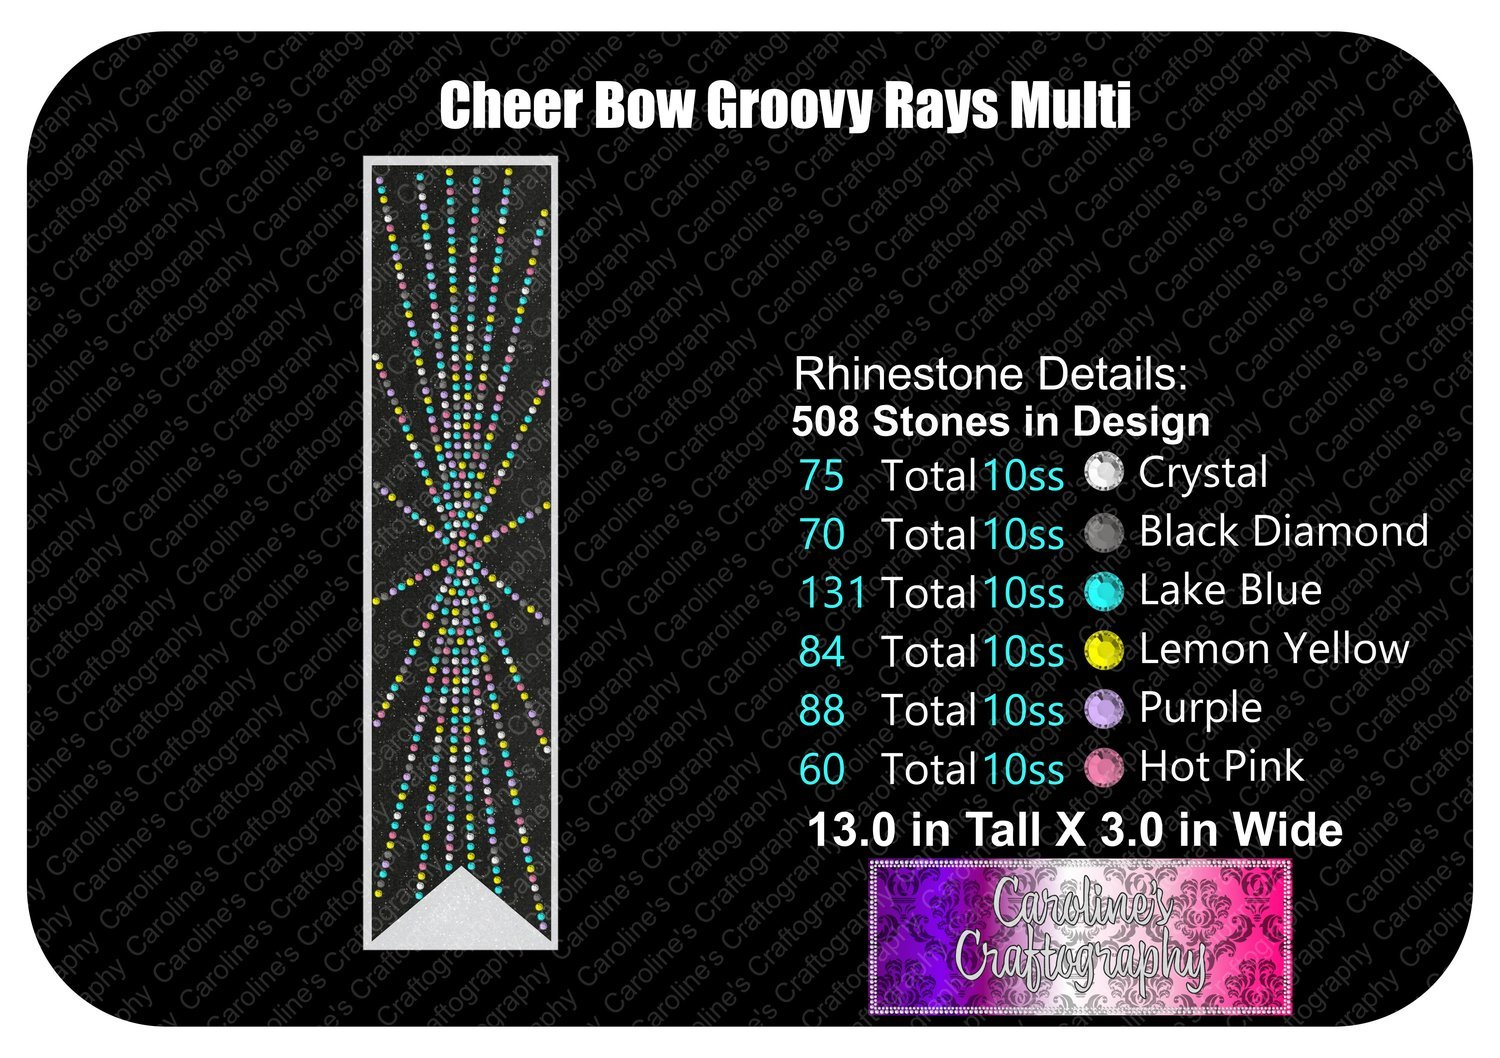 Groovy Rays 3in Cheer Bow Multi Color Stone